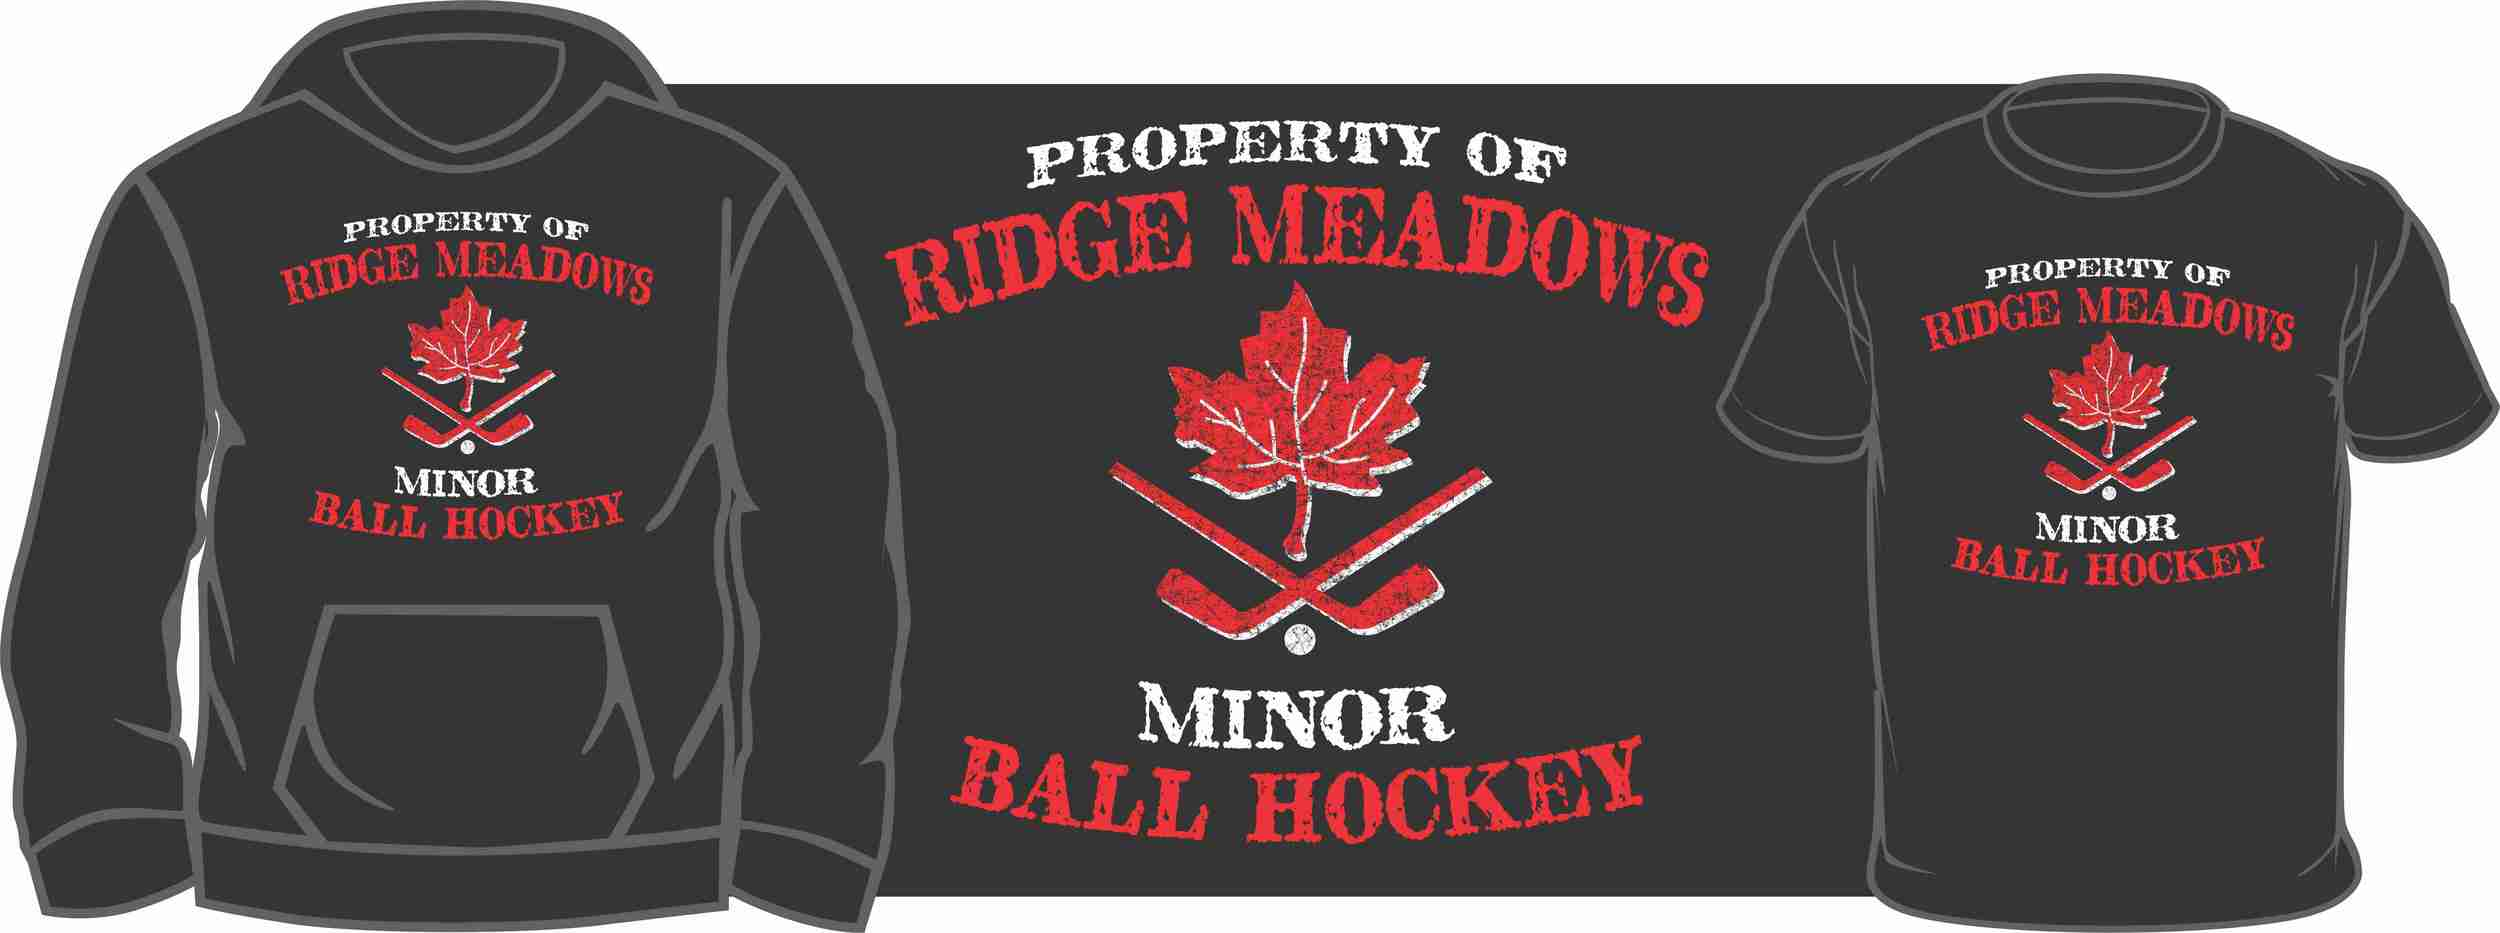 Property of Ridge Meadows Minor Ball Hockey.jpg